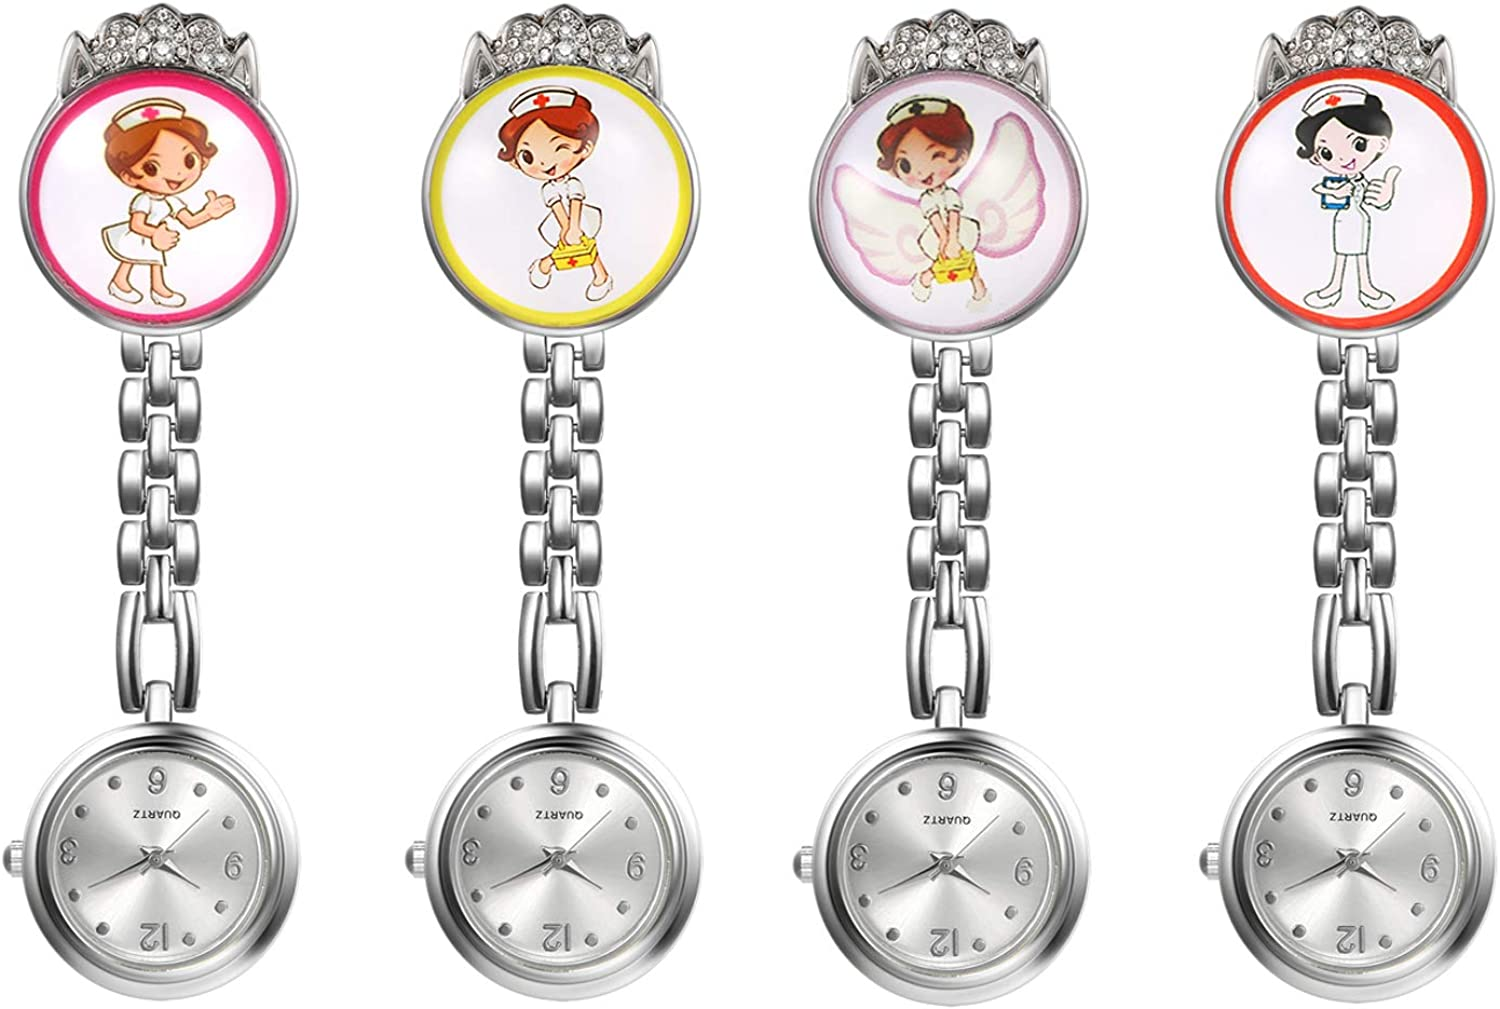 1-4 Pack Max Max 90% OFF 80% OFF Nurse Watch for Women and on Clip Lapel Hanging Doctors